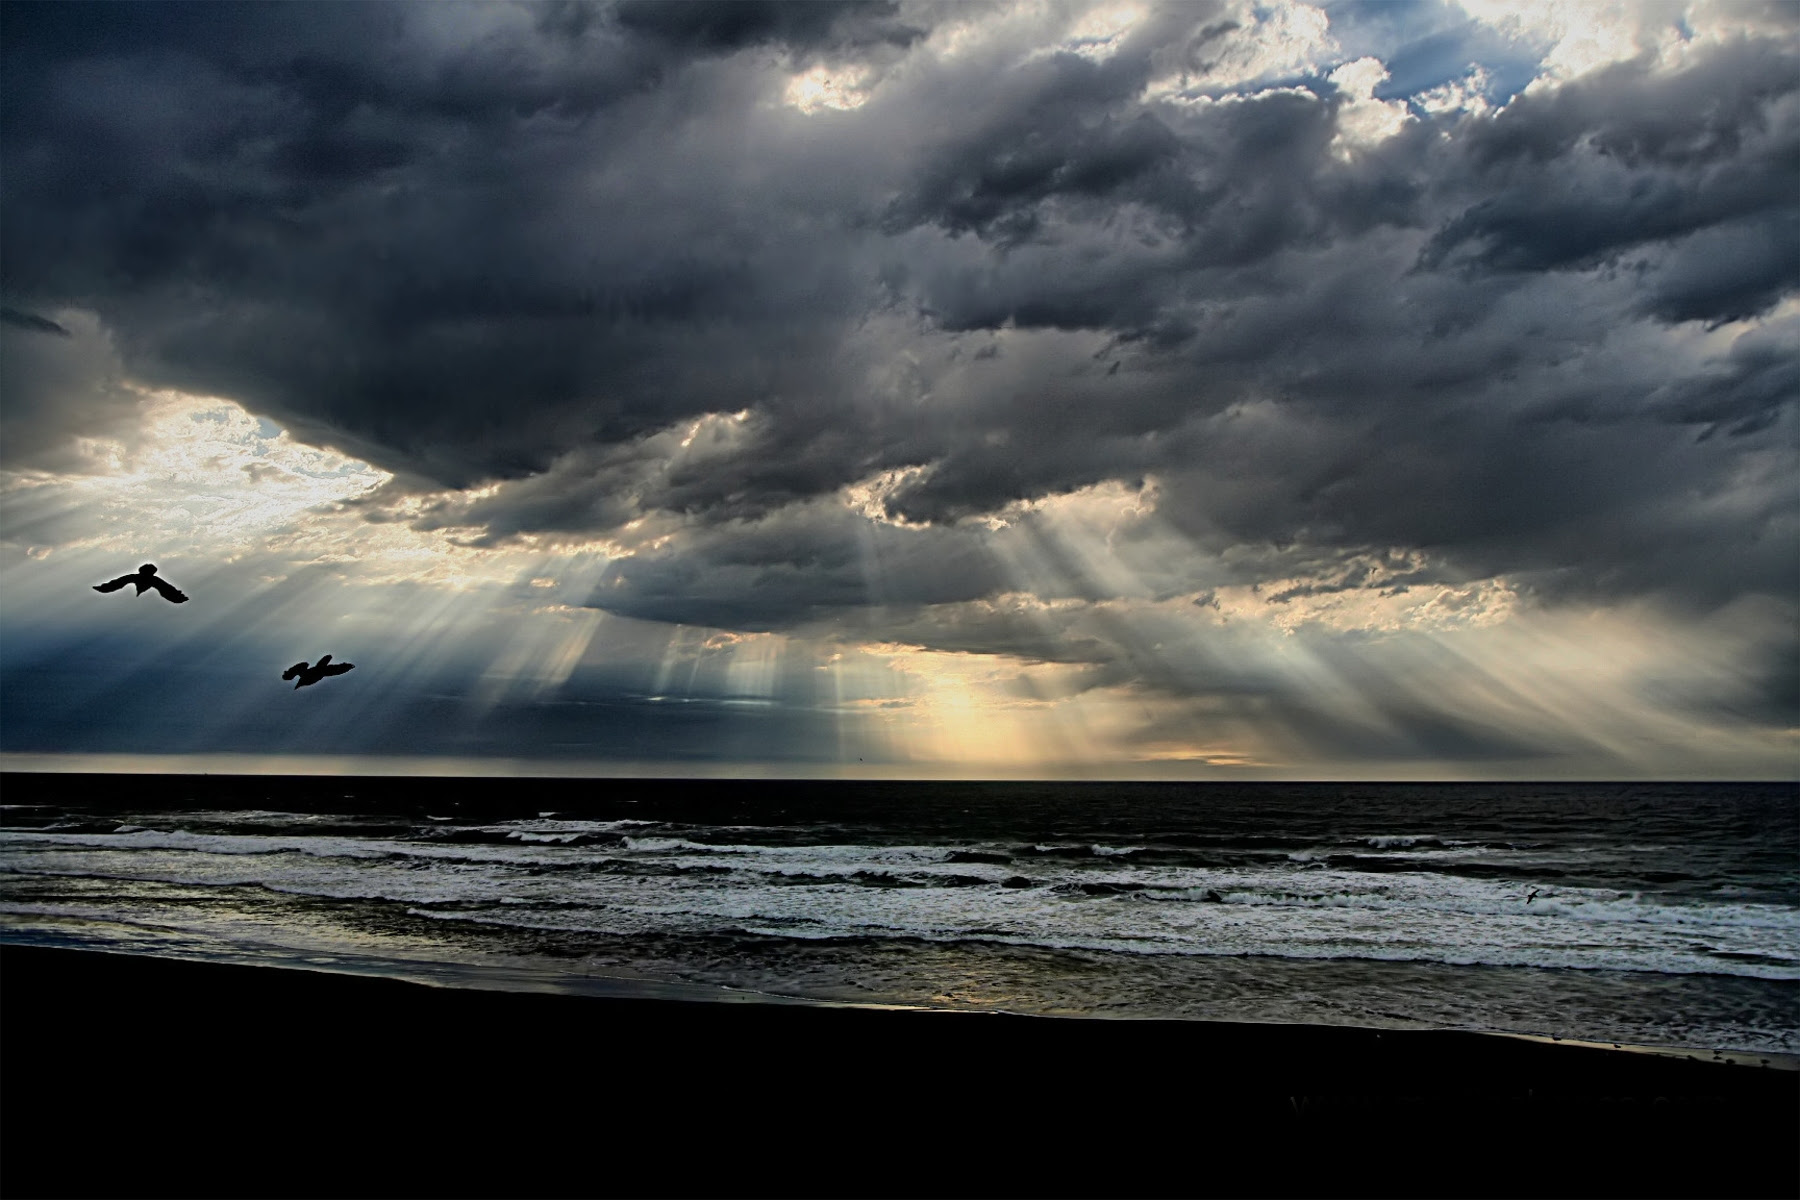 http://upload.wikimedia.org/wikipedia/commons/a/a1/Beach_crepuscular_rays_new.jpg